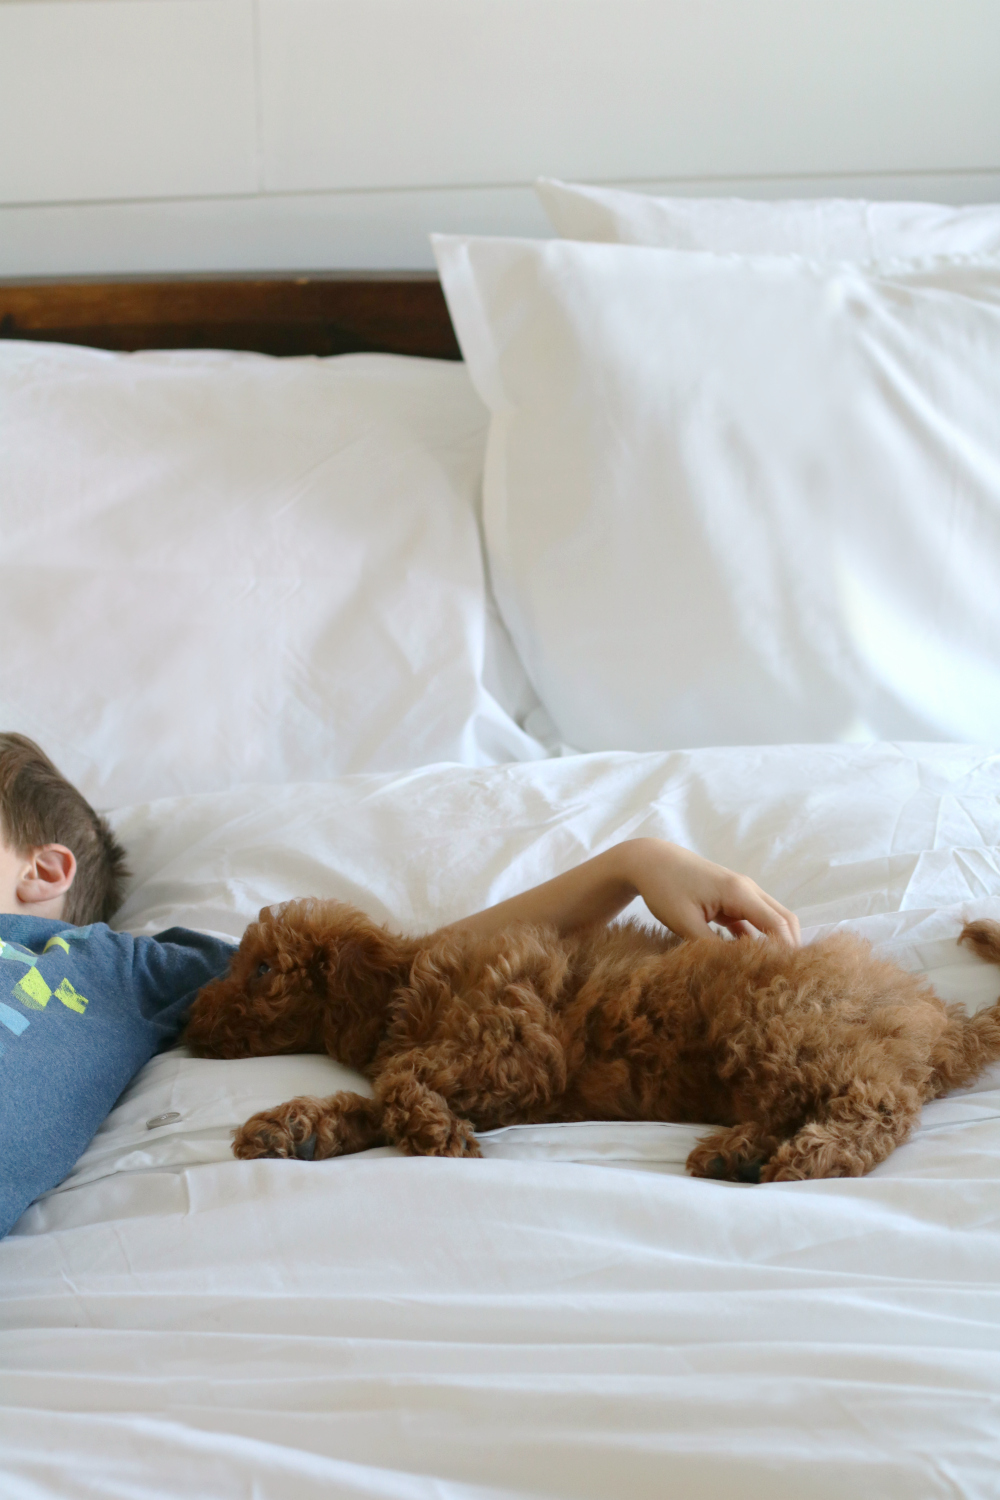 High quality bedding that is cozy and stylish... kid and pet friendly! #gryphonhome